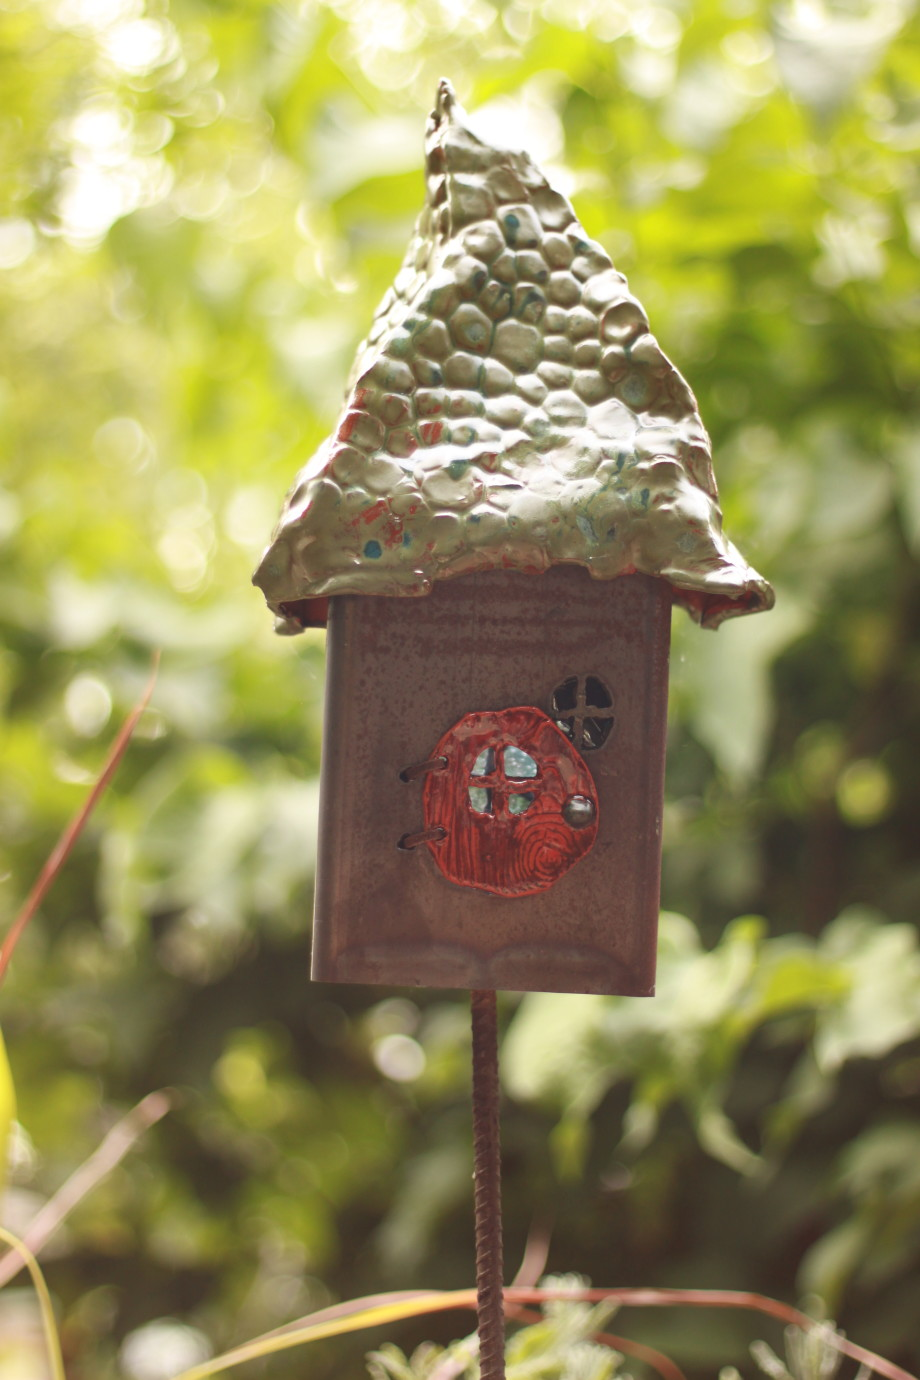 Square Faery house